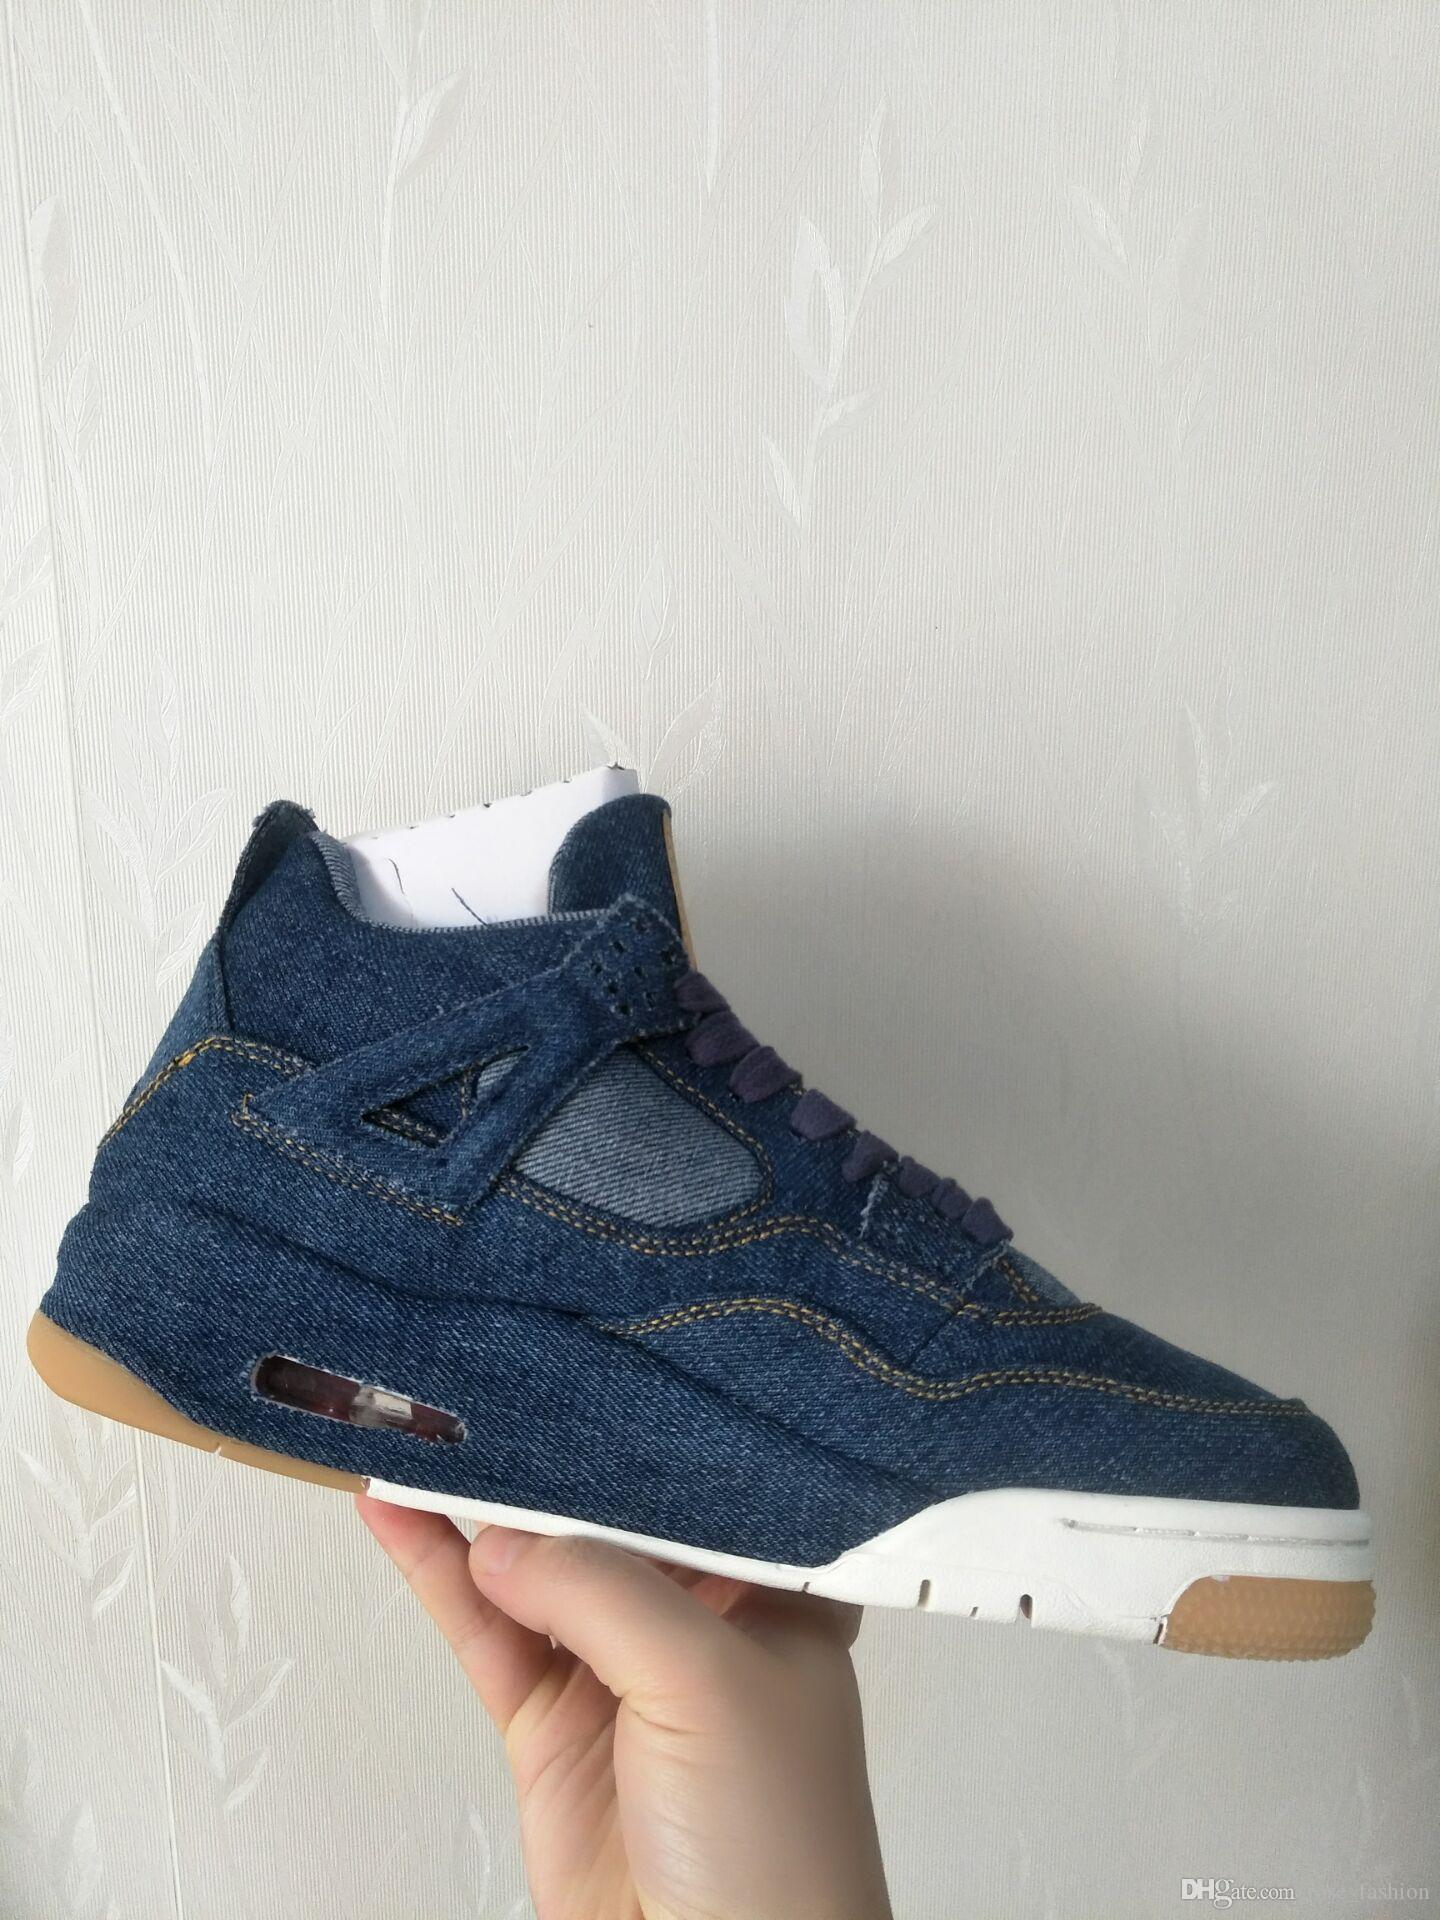 4 denim NRG Blue Black White Jeans Basketball Shoes with original box 4s denim Travis Jeans Sports Shoes sneaker shoes